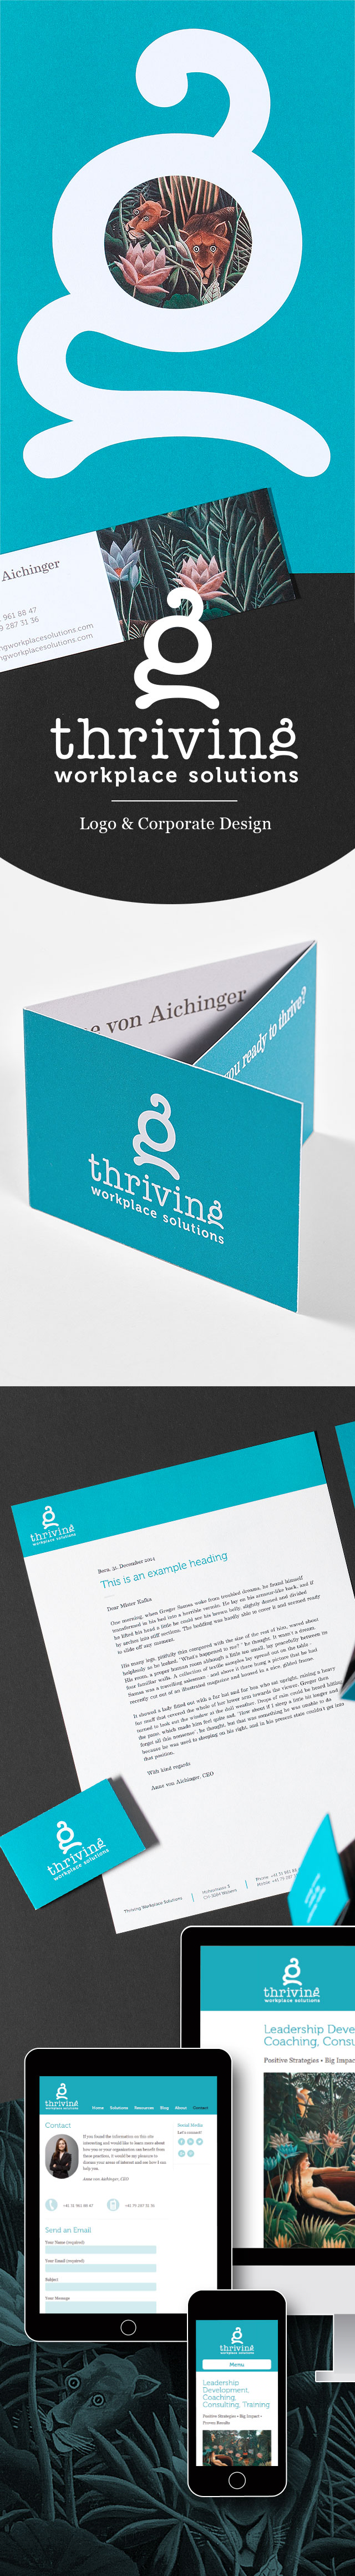 GLUNZ Projekt: Thriving - Mobile Version